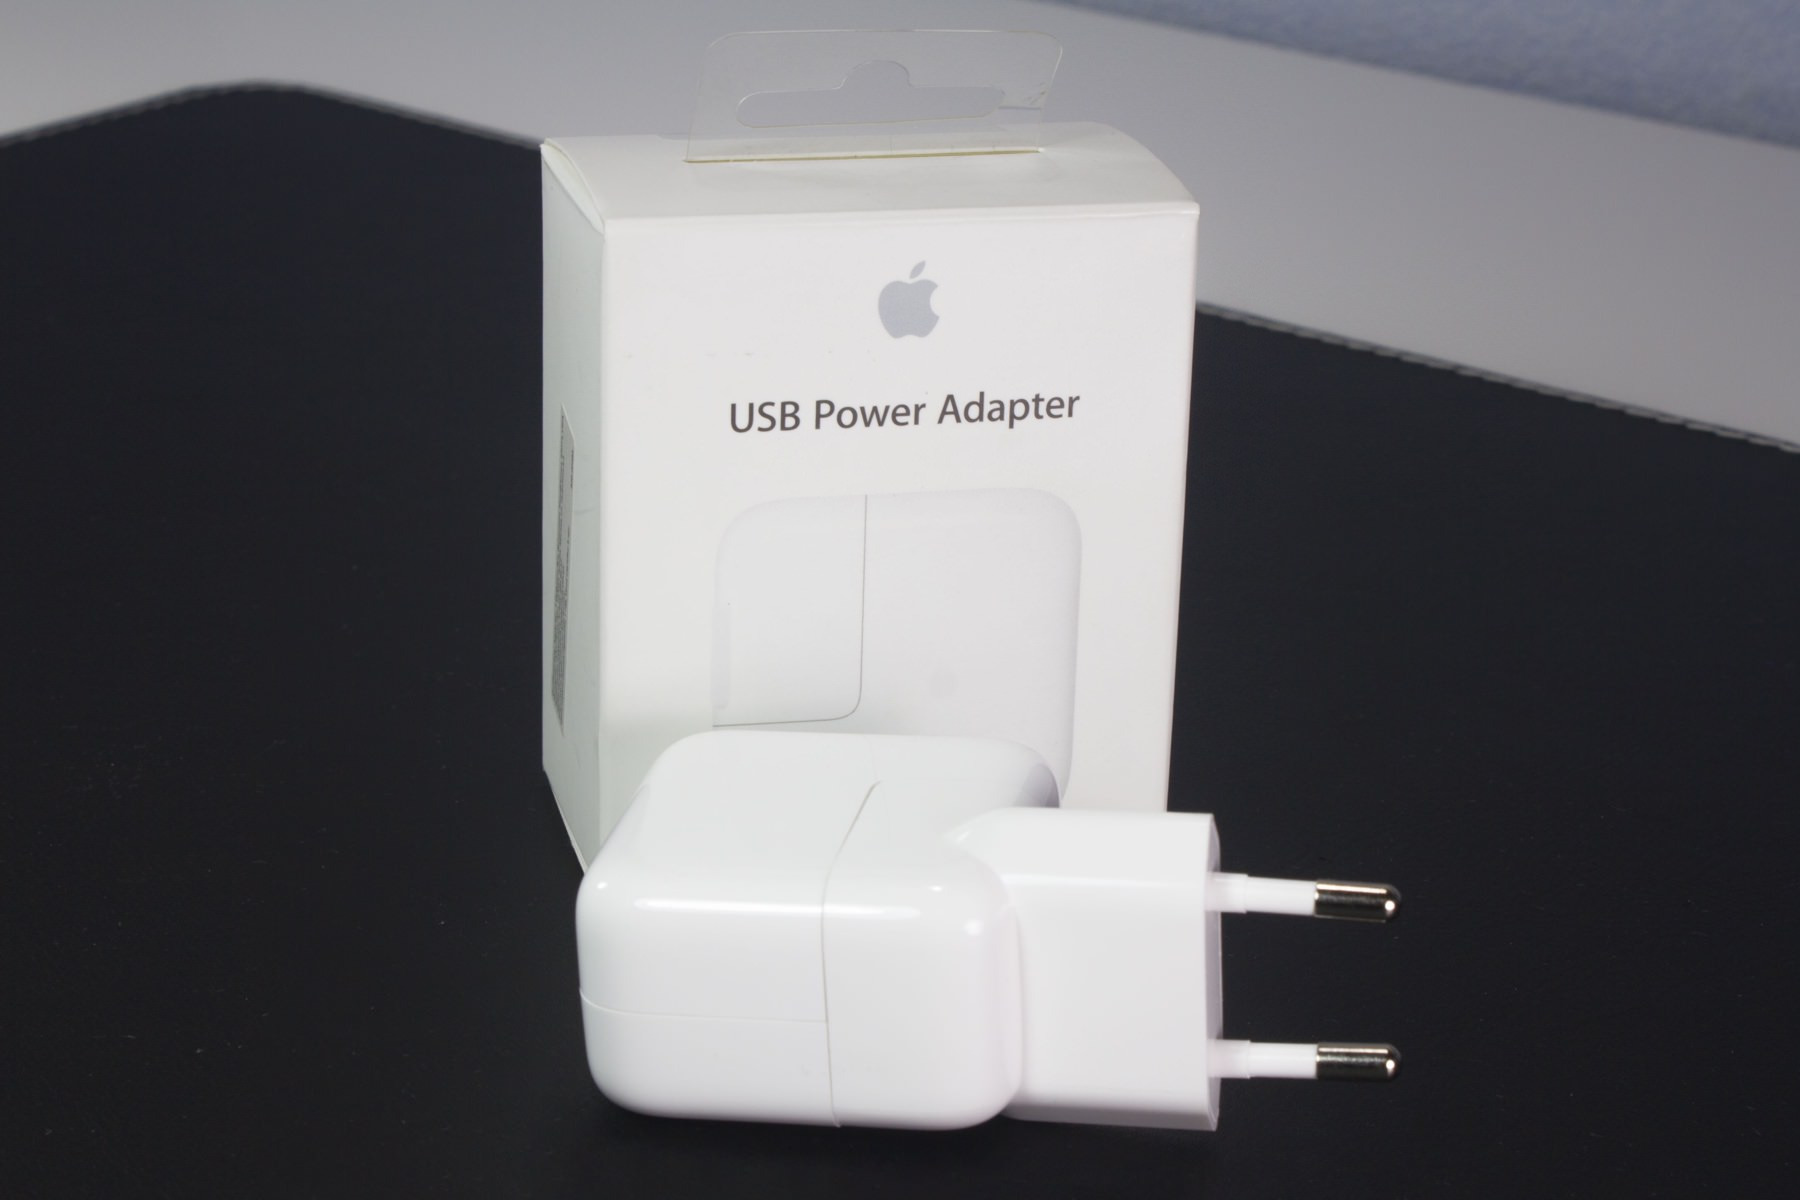 Обзор Apple USB Power Adapter 12W для iPhone и iPad